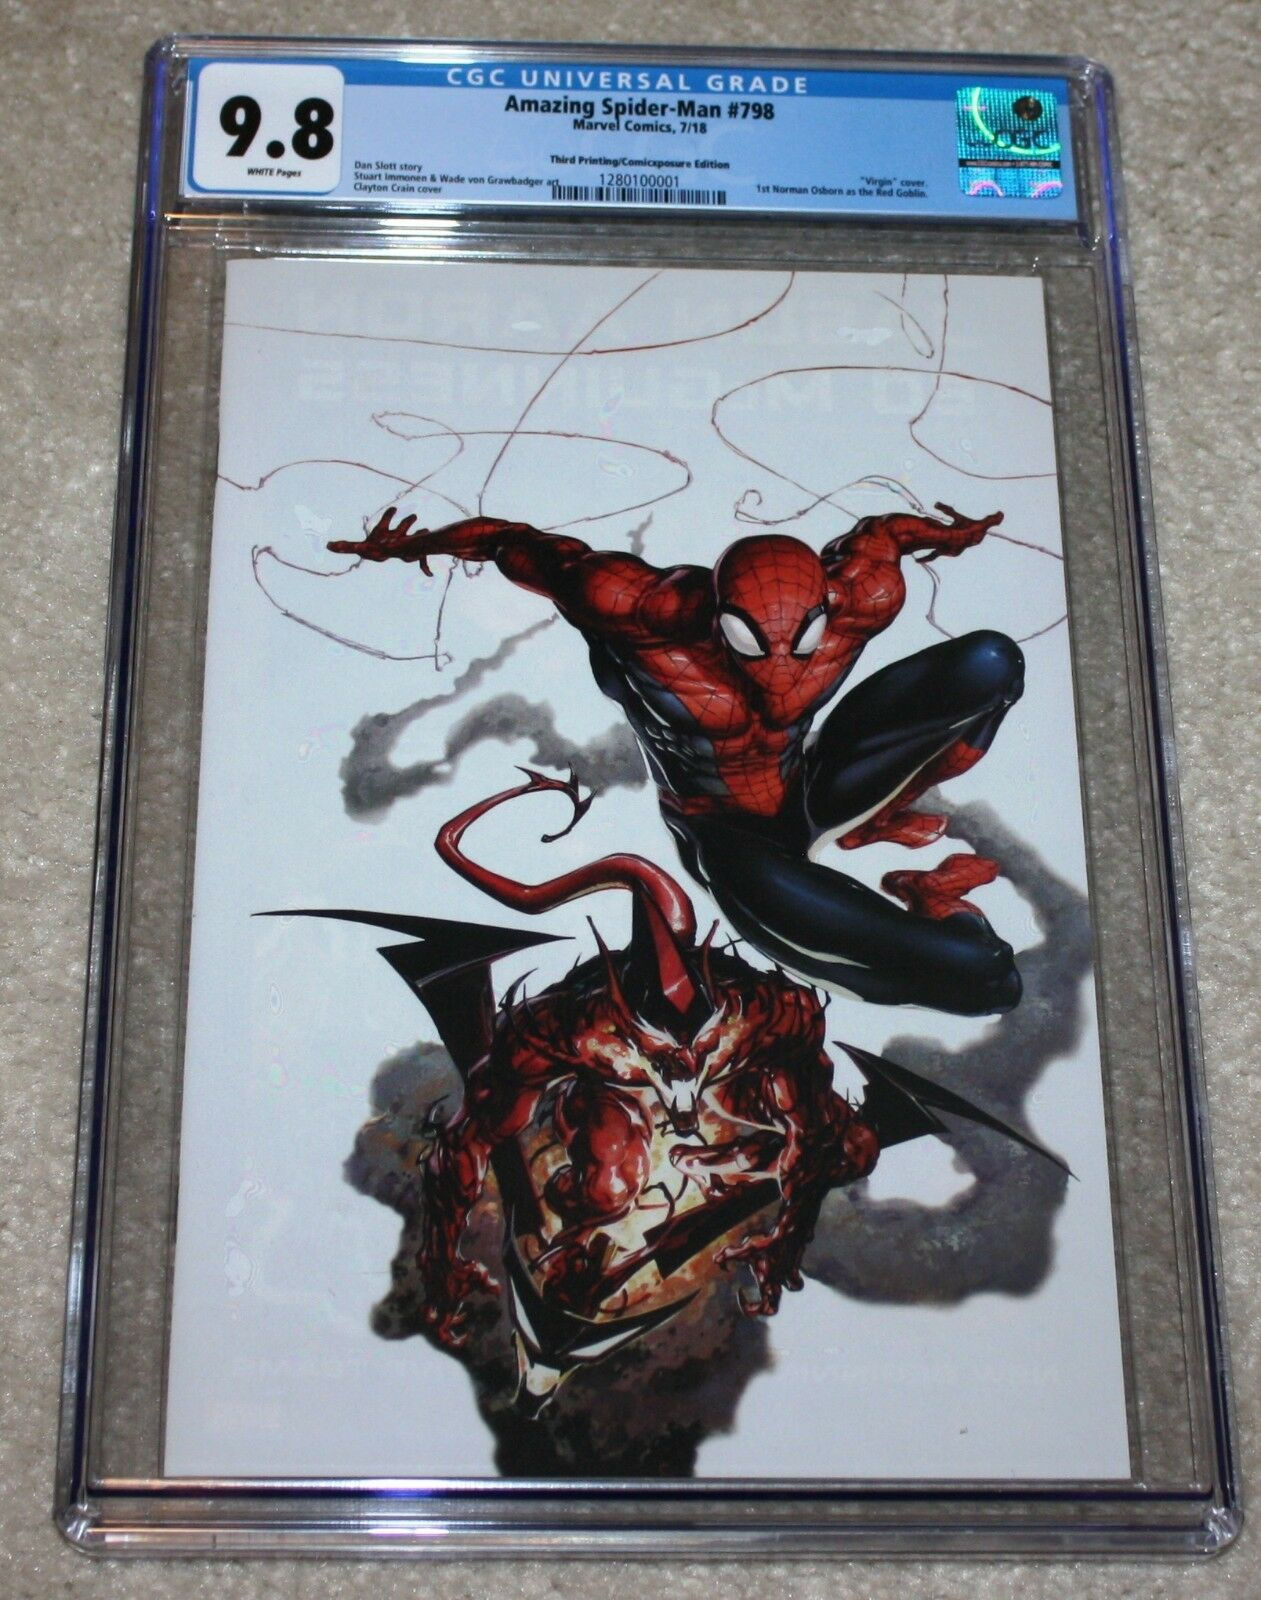 AMAZING SPIDER-MAN 798 CGC 9.8 CLAYTON CRAIN WHITE VIRGIN VARIANT RED GOBLIN